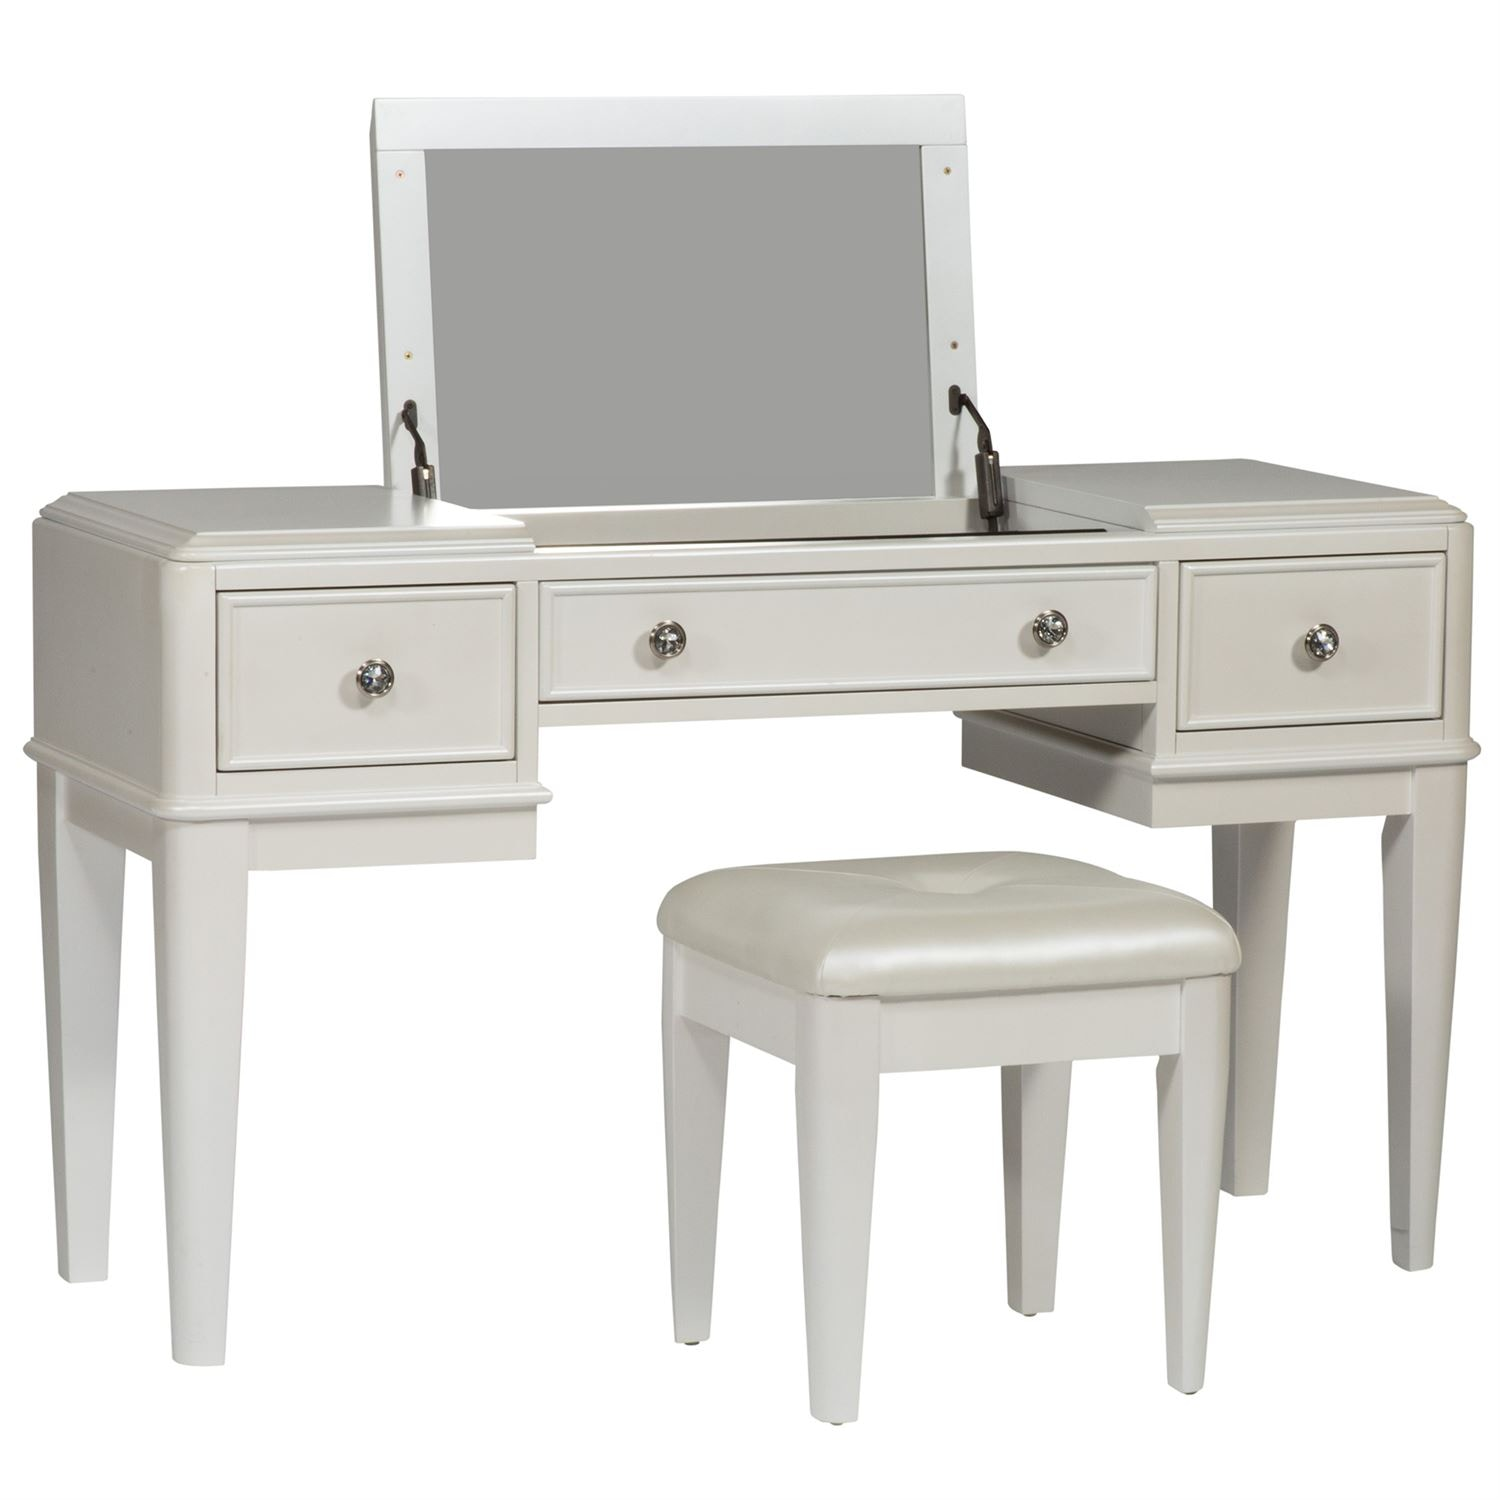 Liberty Furniture Bedroom Vanity 710 YBR VN   Furniture Kingdom    Gainesville, FL